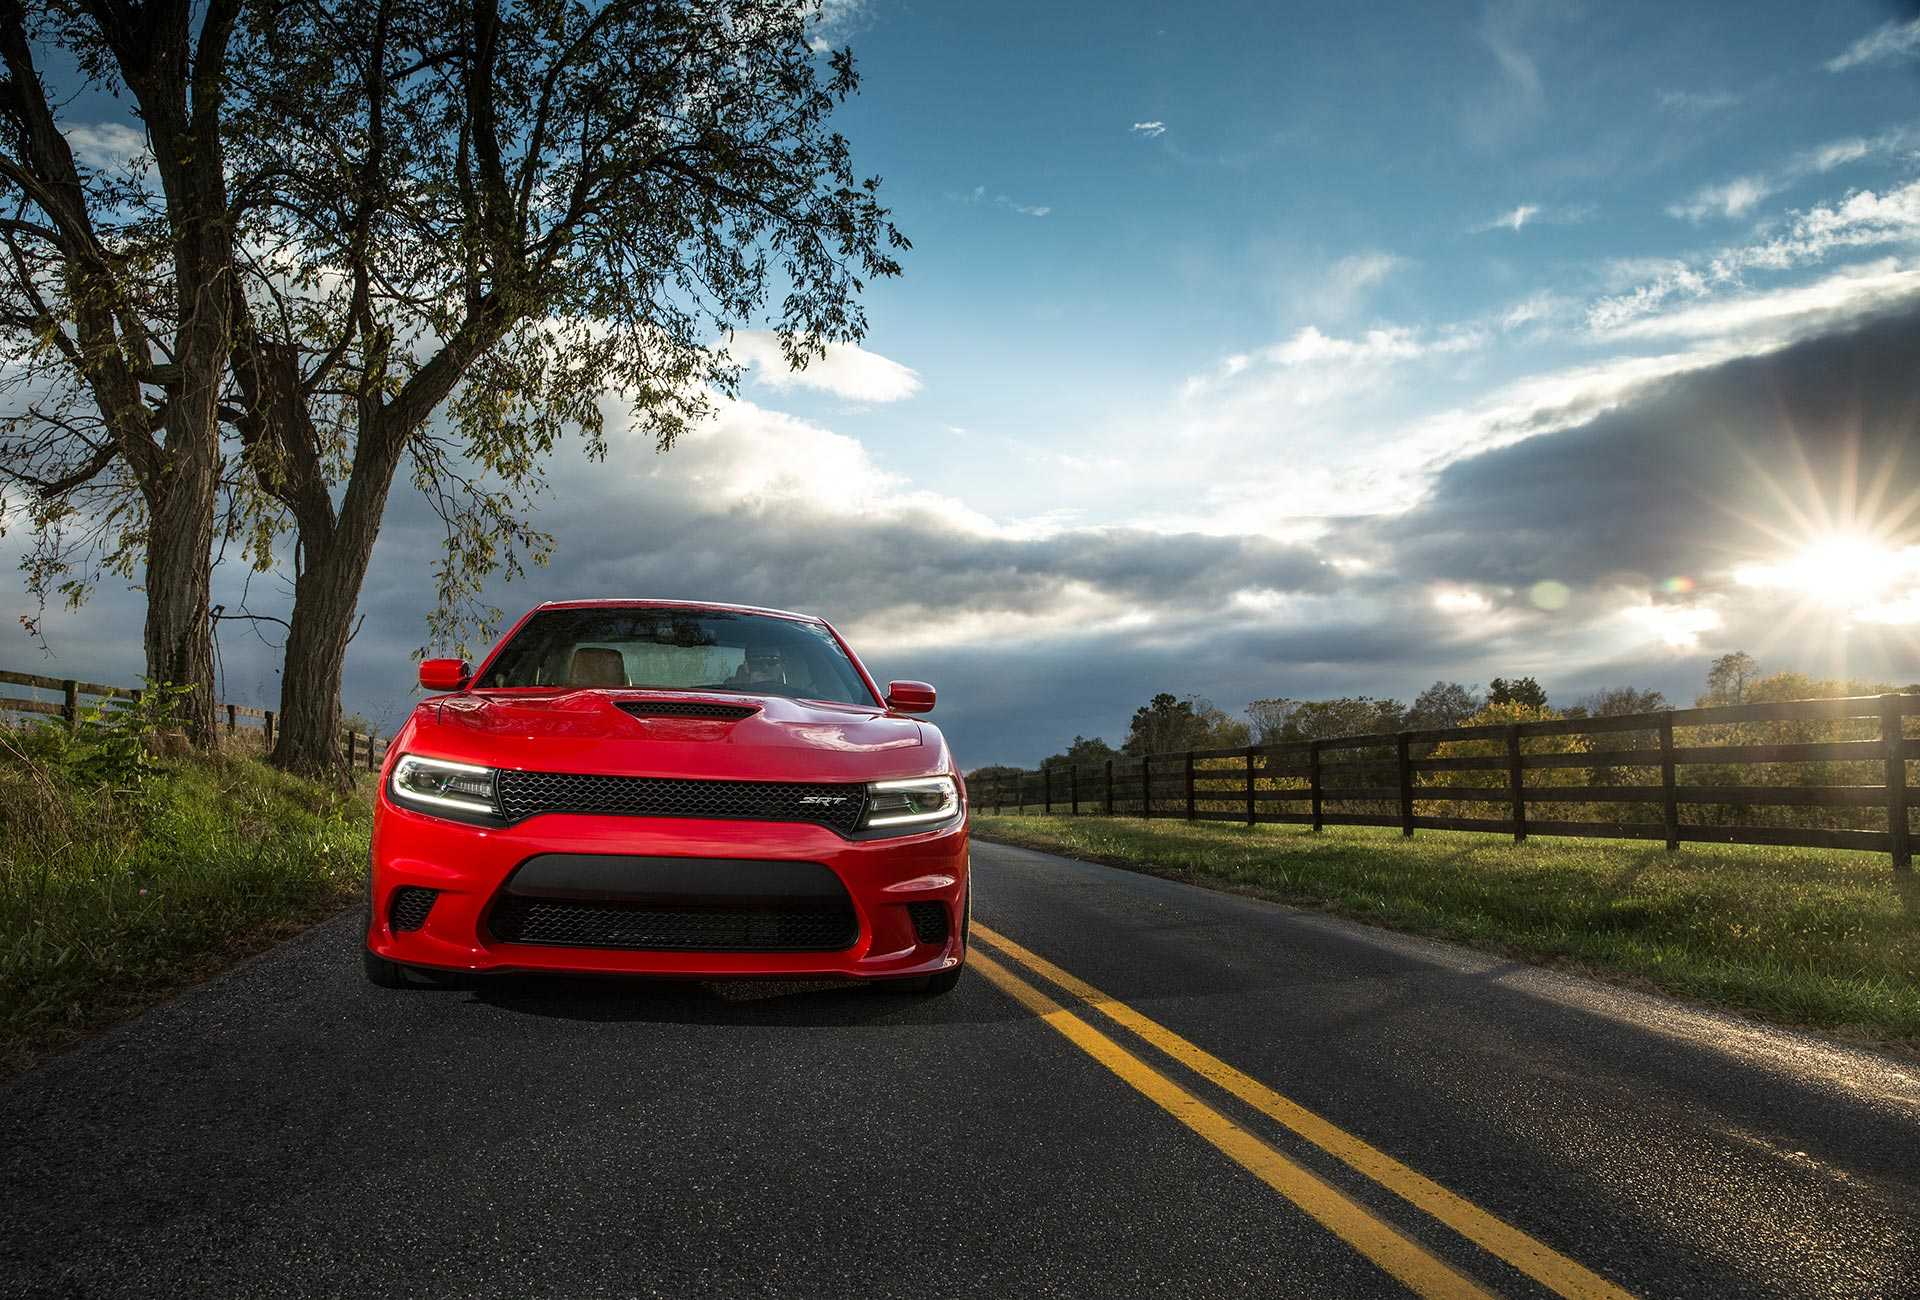 Dodge Charger Lease Deals NJ